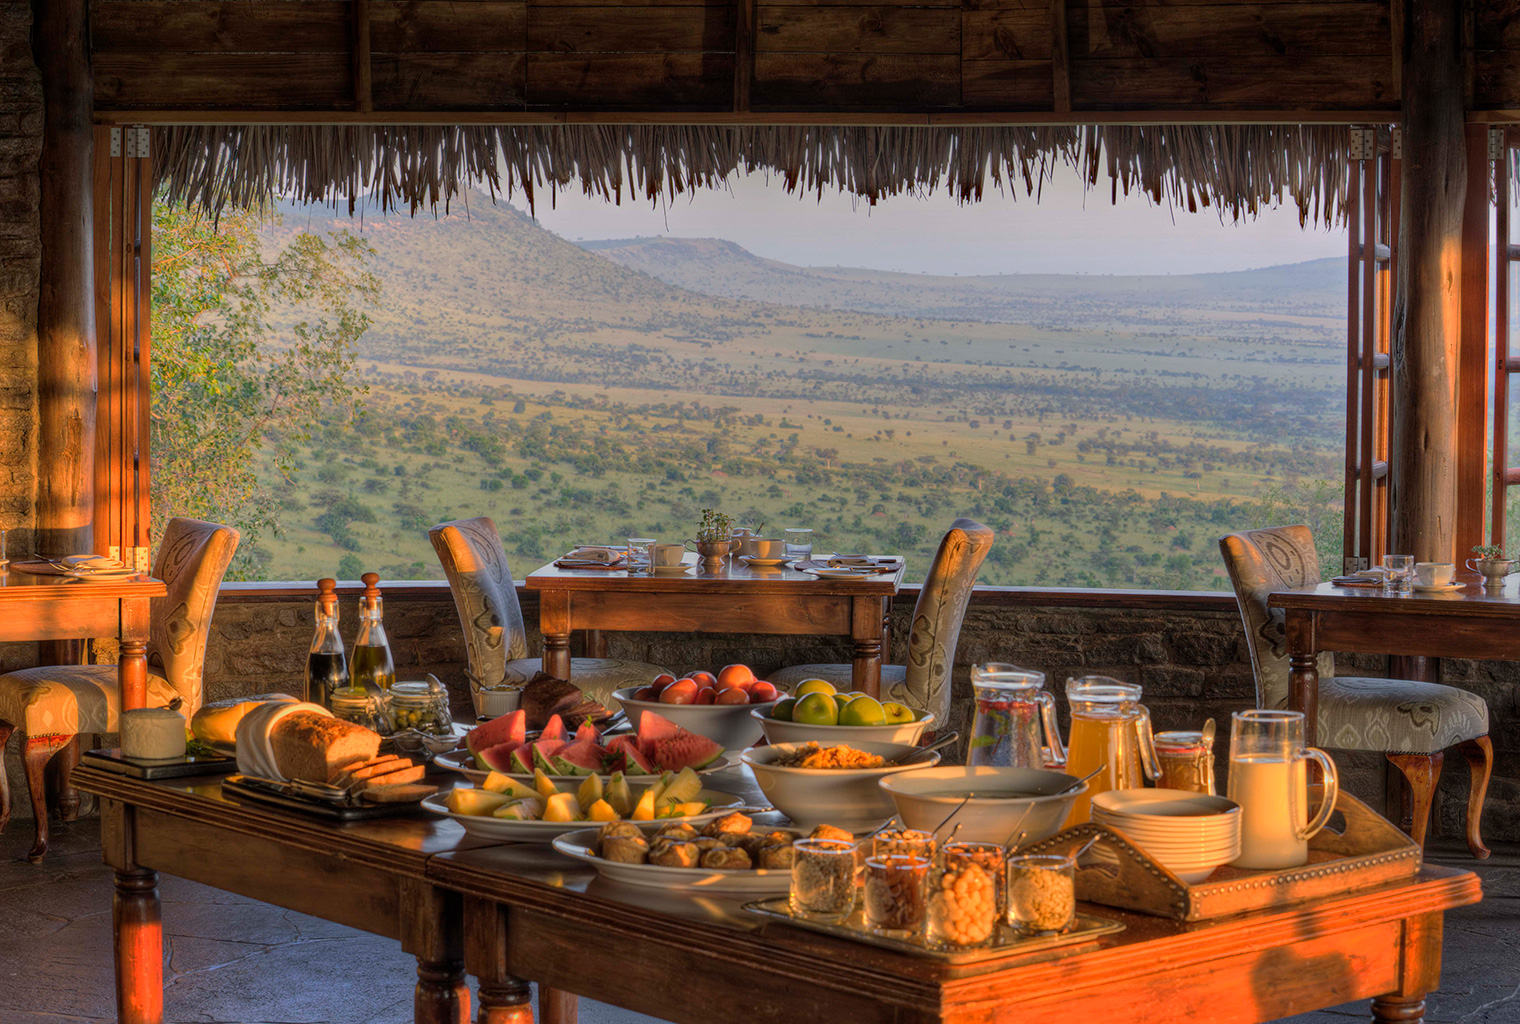 Kleins-Camp-Tanzania-Food-View